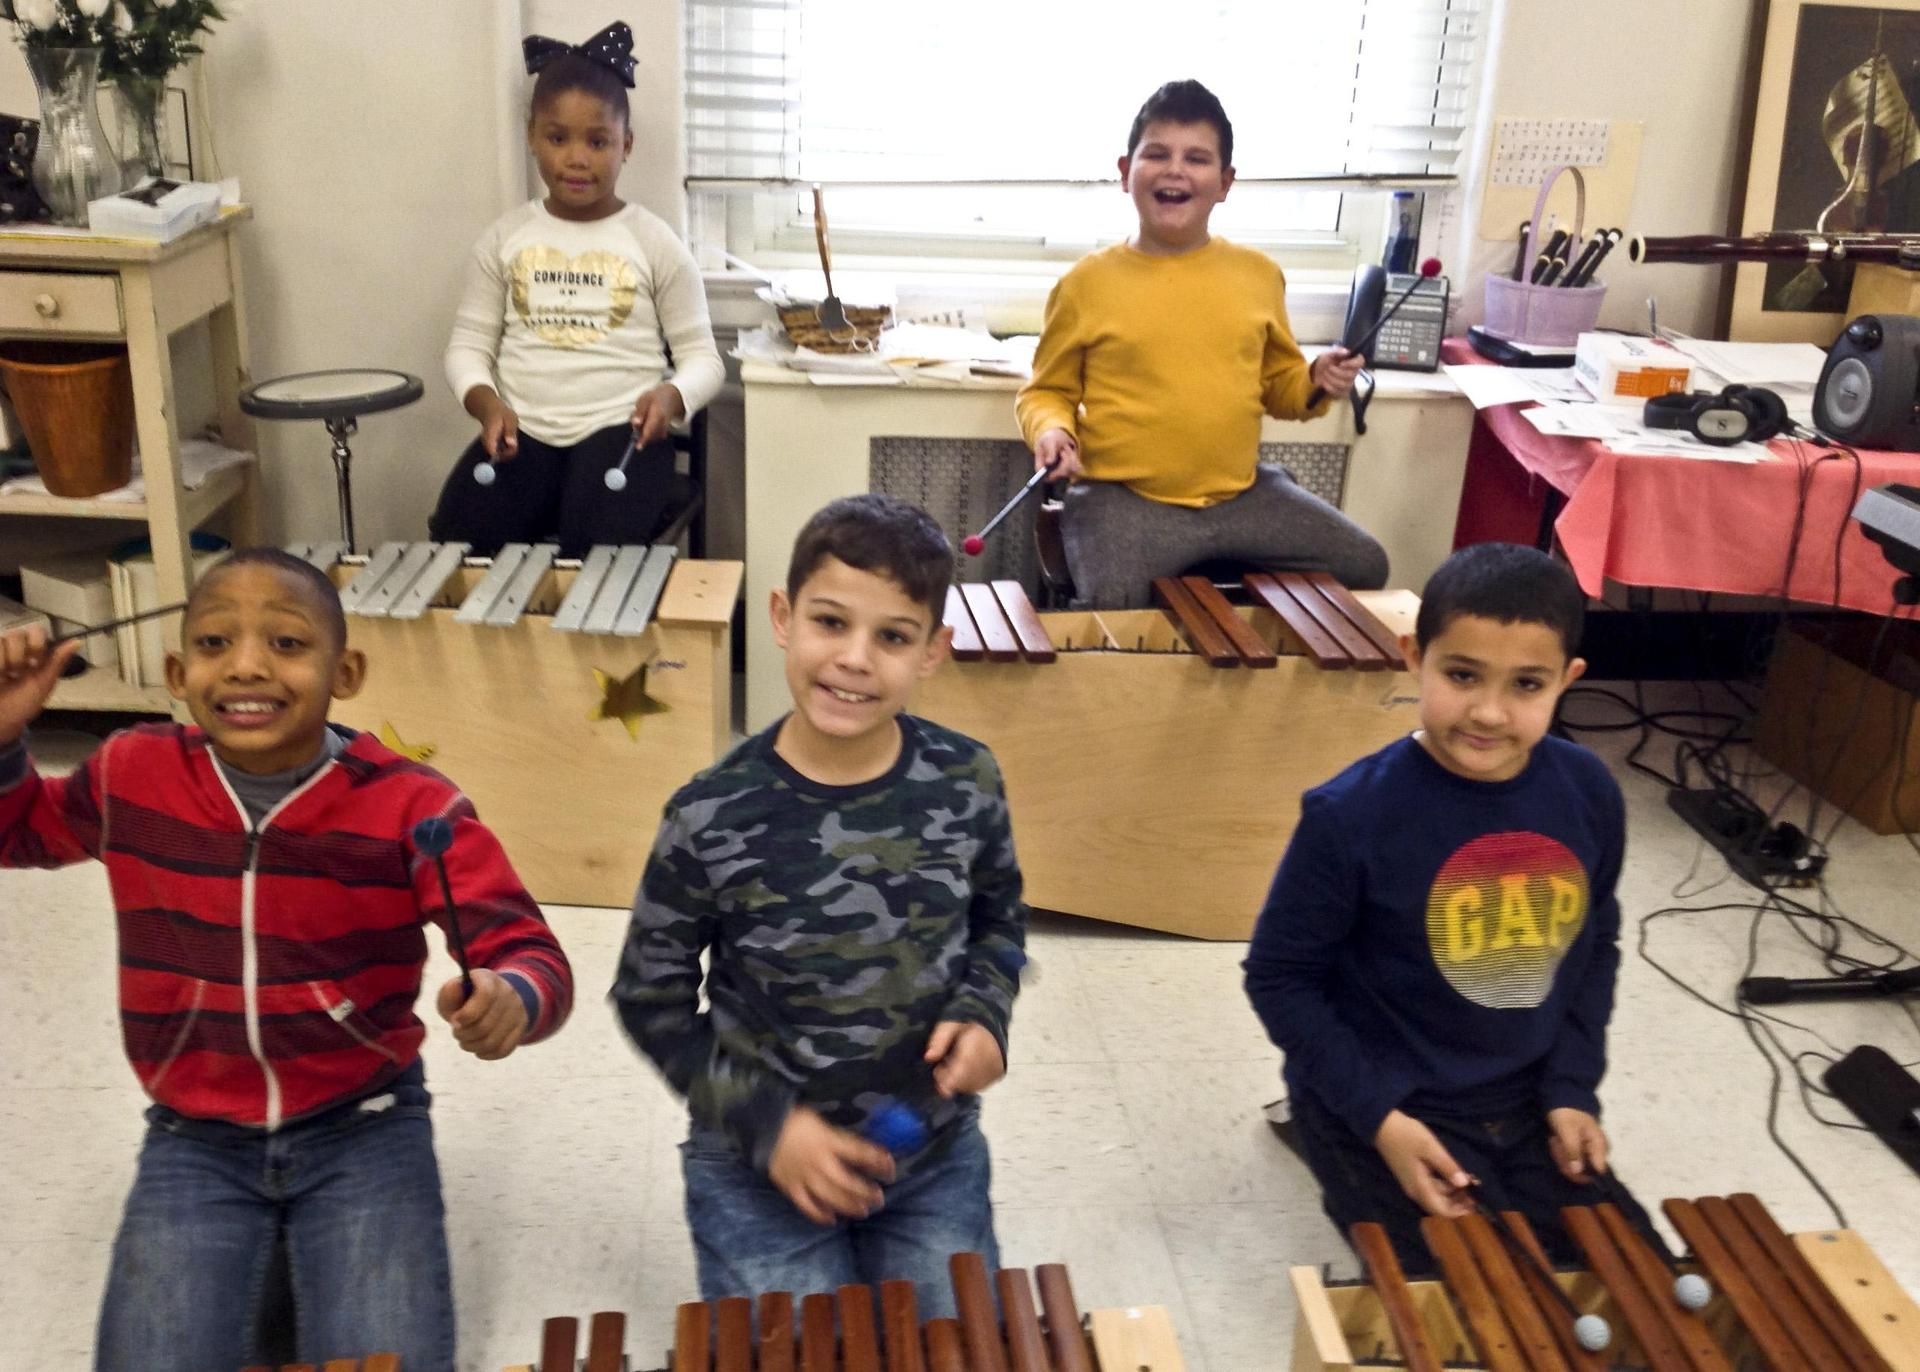 Five Van Cleve students on percussion instruments.